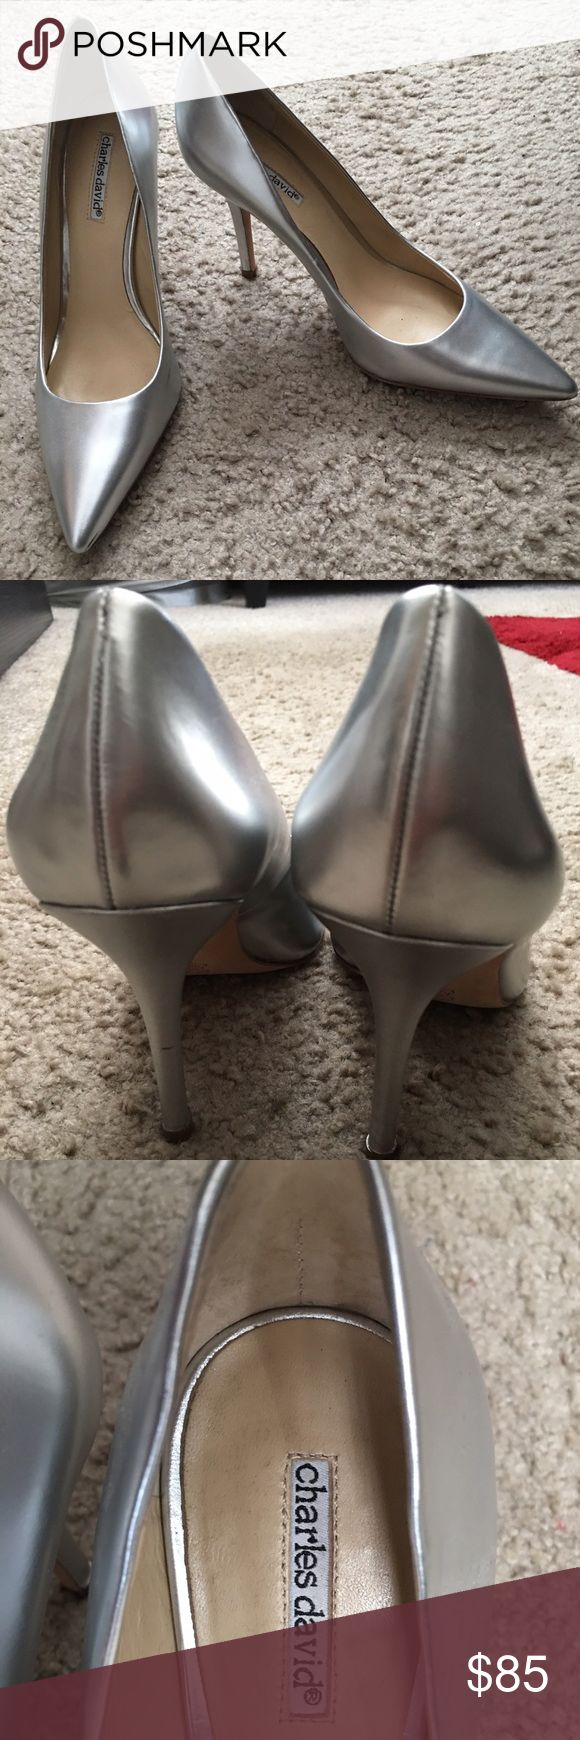 Silver Leather Charles David Pump Comfy silver metallic Charles David pump!! The shoe is very comfy ! Small wrinkle on heel where it was repaired. Great look!! Charles David Shoes Heels